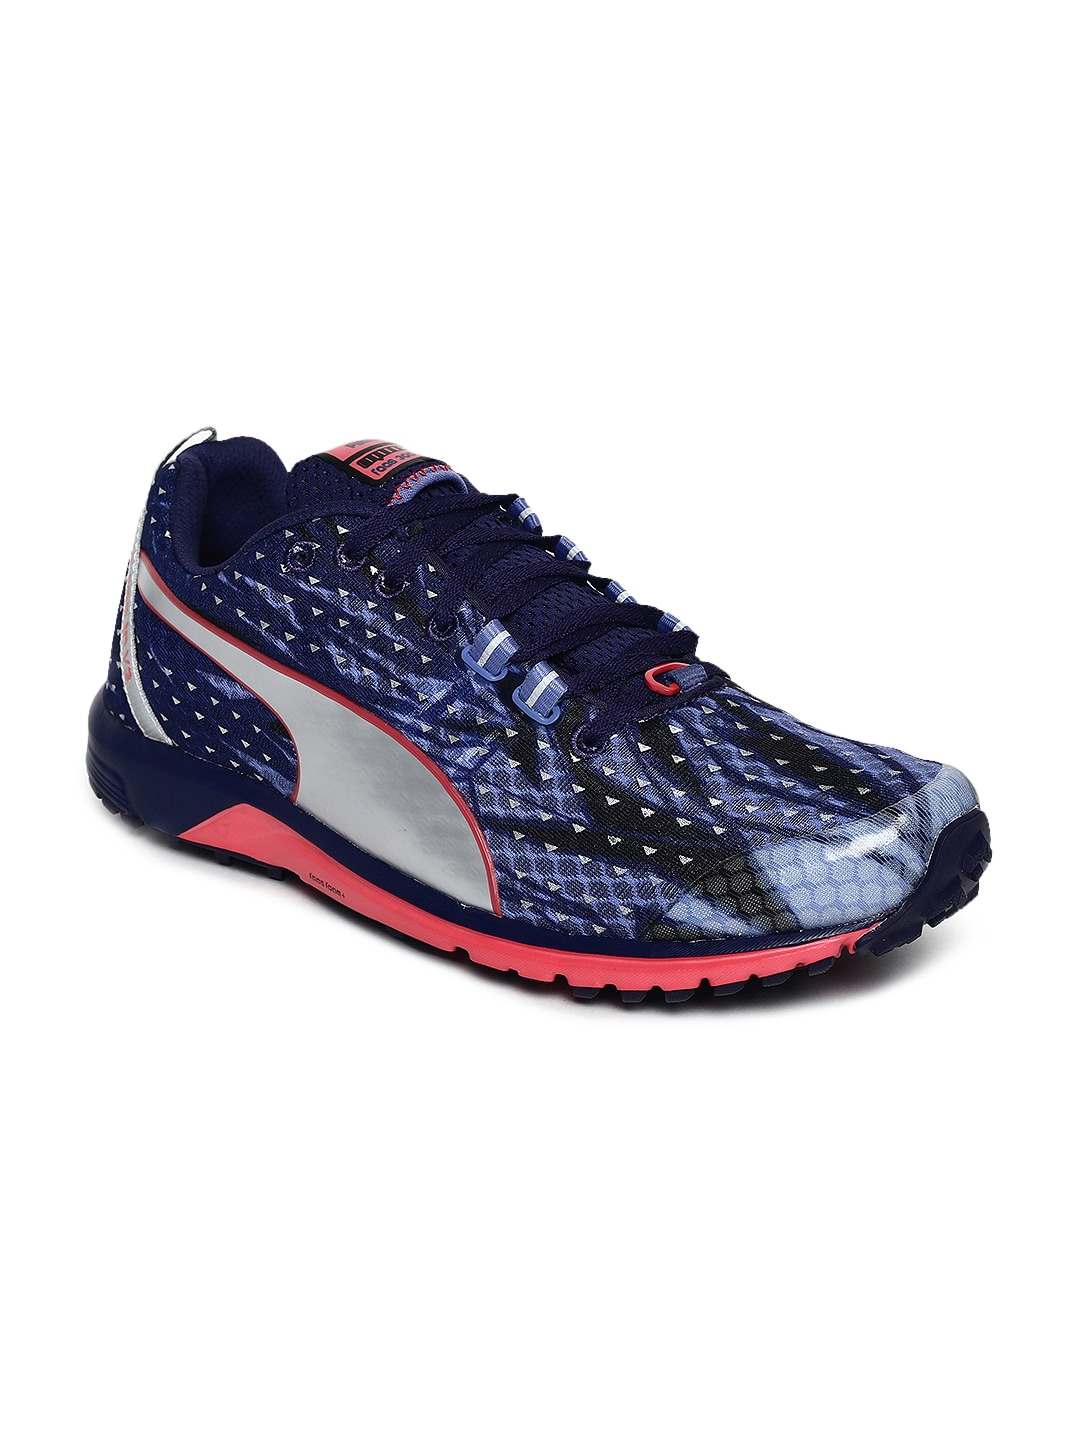 b1a9268bebfb Puma Shoes - Buy Puma Shoes for Men   Women Online in India